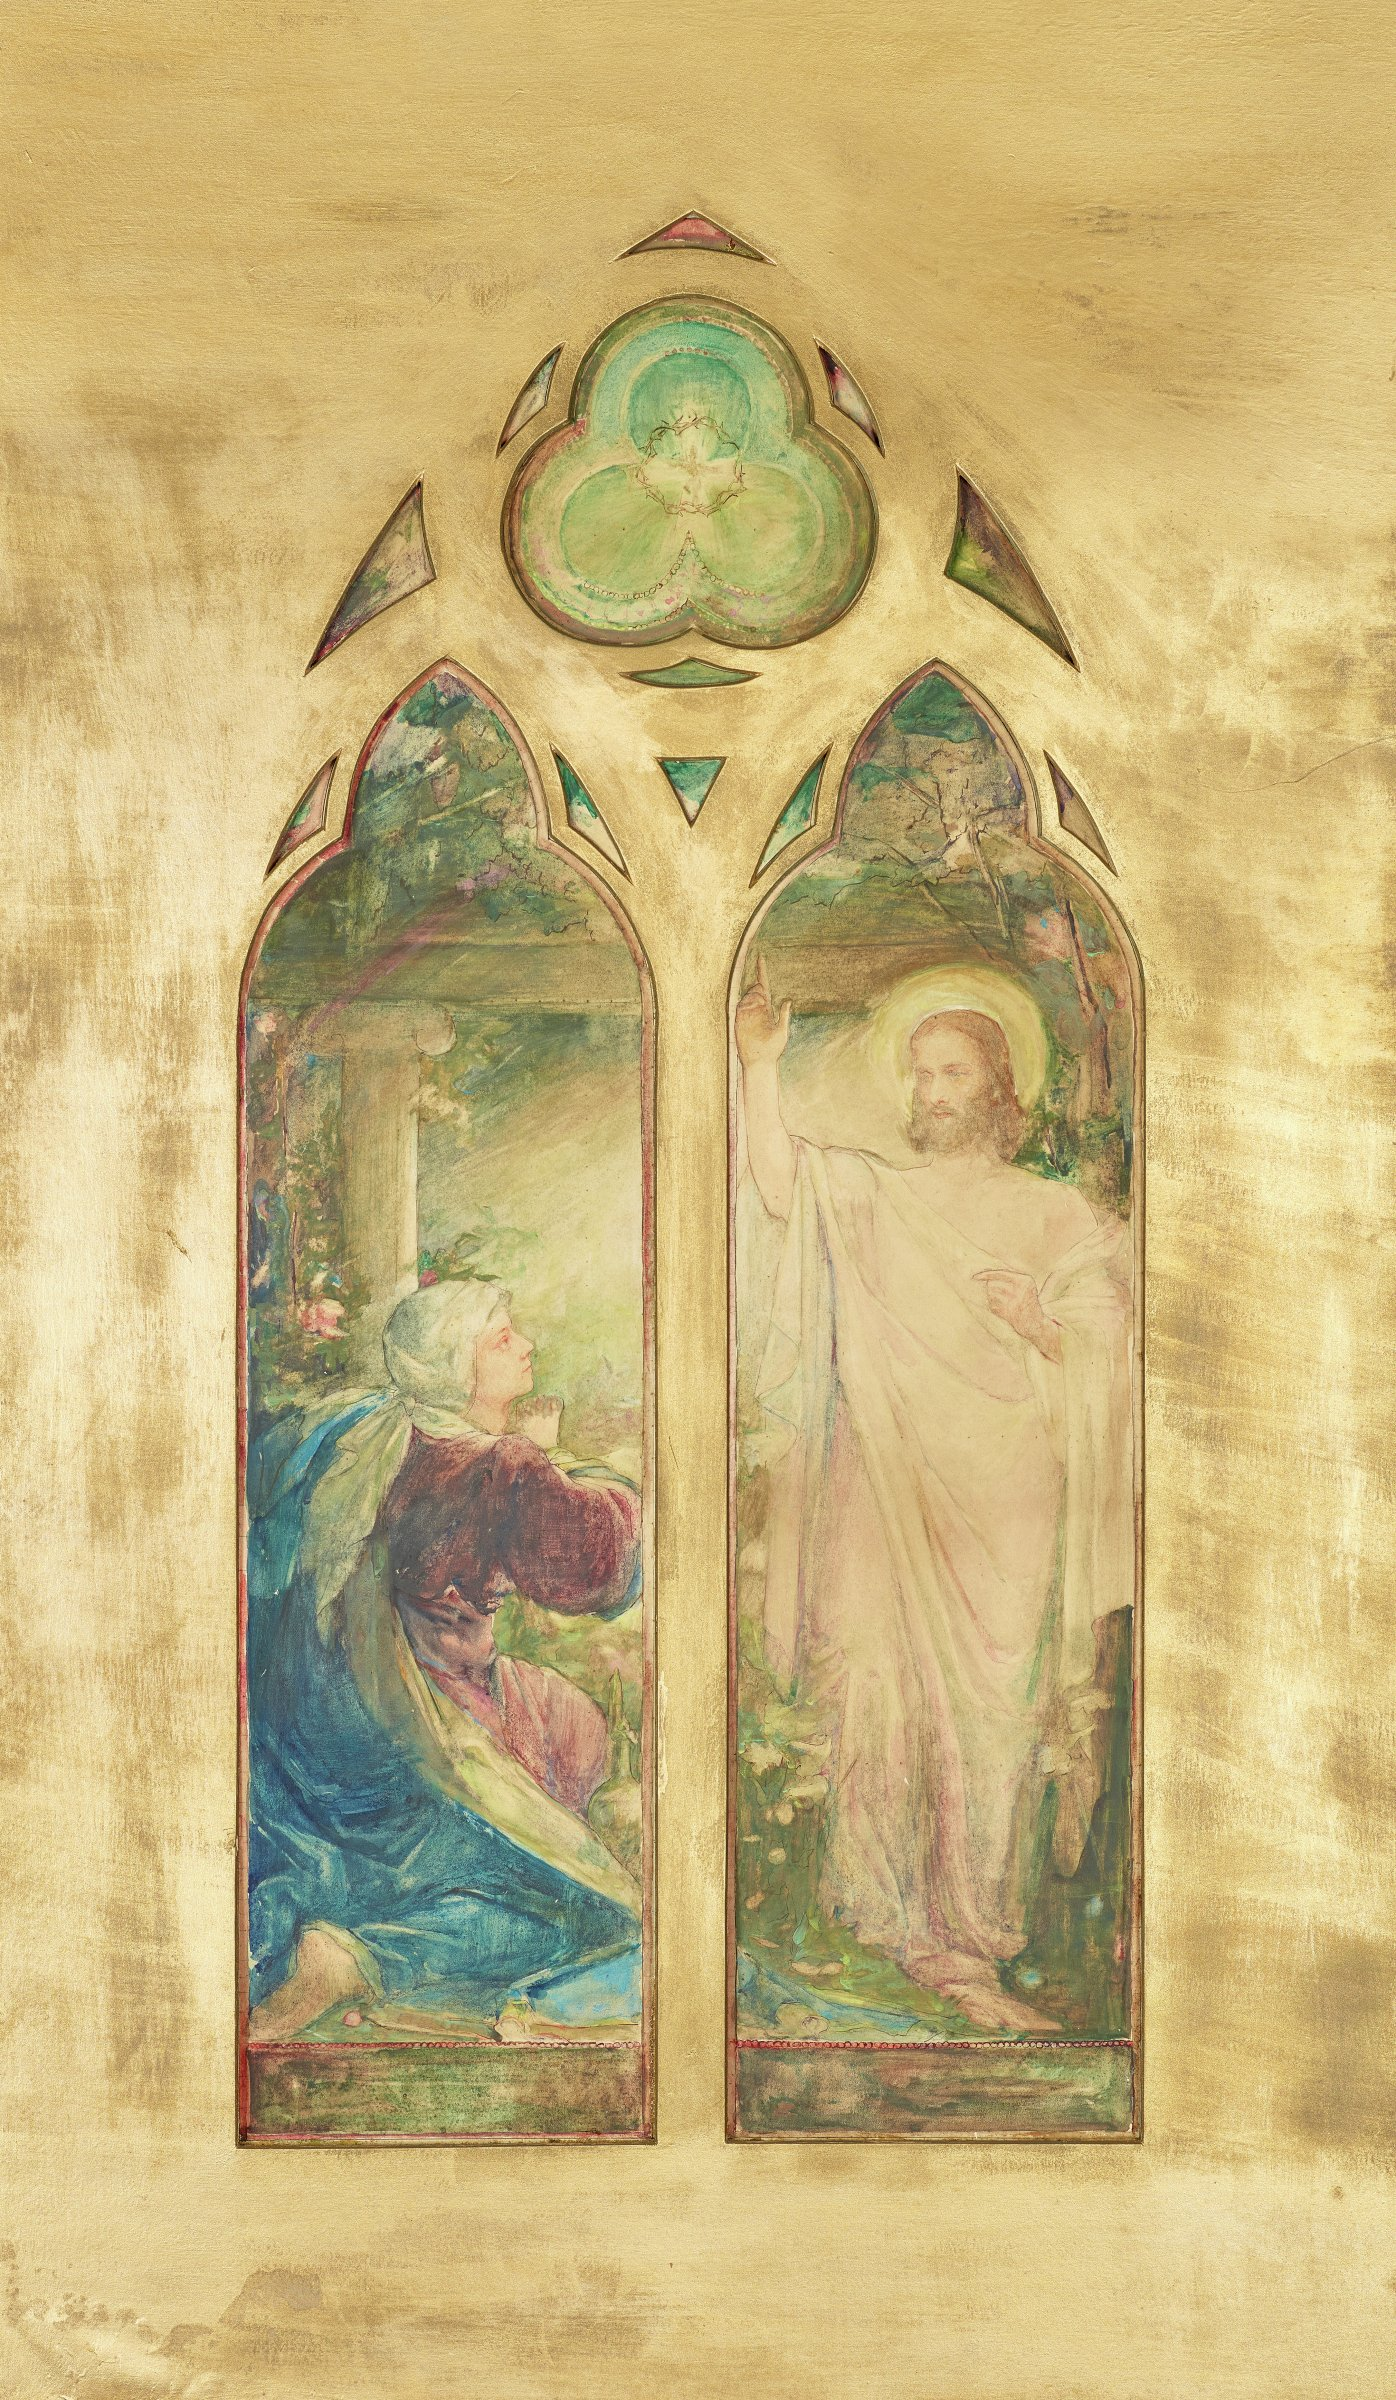 This watercolor and its custom-cut, gold-colored mat represent a stained glass window for a church. The format includes two long, figural lower panels as well as twelve additional decorative elements above. Together all of these cut outs form a pointed (gothic) arch. In the lower left figural panel a woman (the Virgin Mary) wearing blue drapery kneels in front of a column. In the lower right figural panel a man (Jesus) wearing pink-white drapery raises his right arm, pointing his index finger.